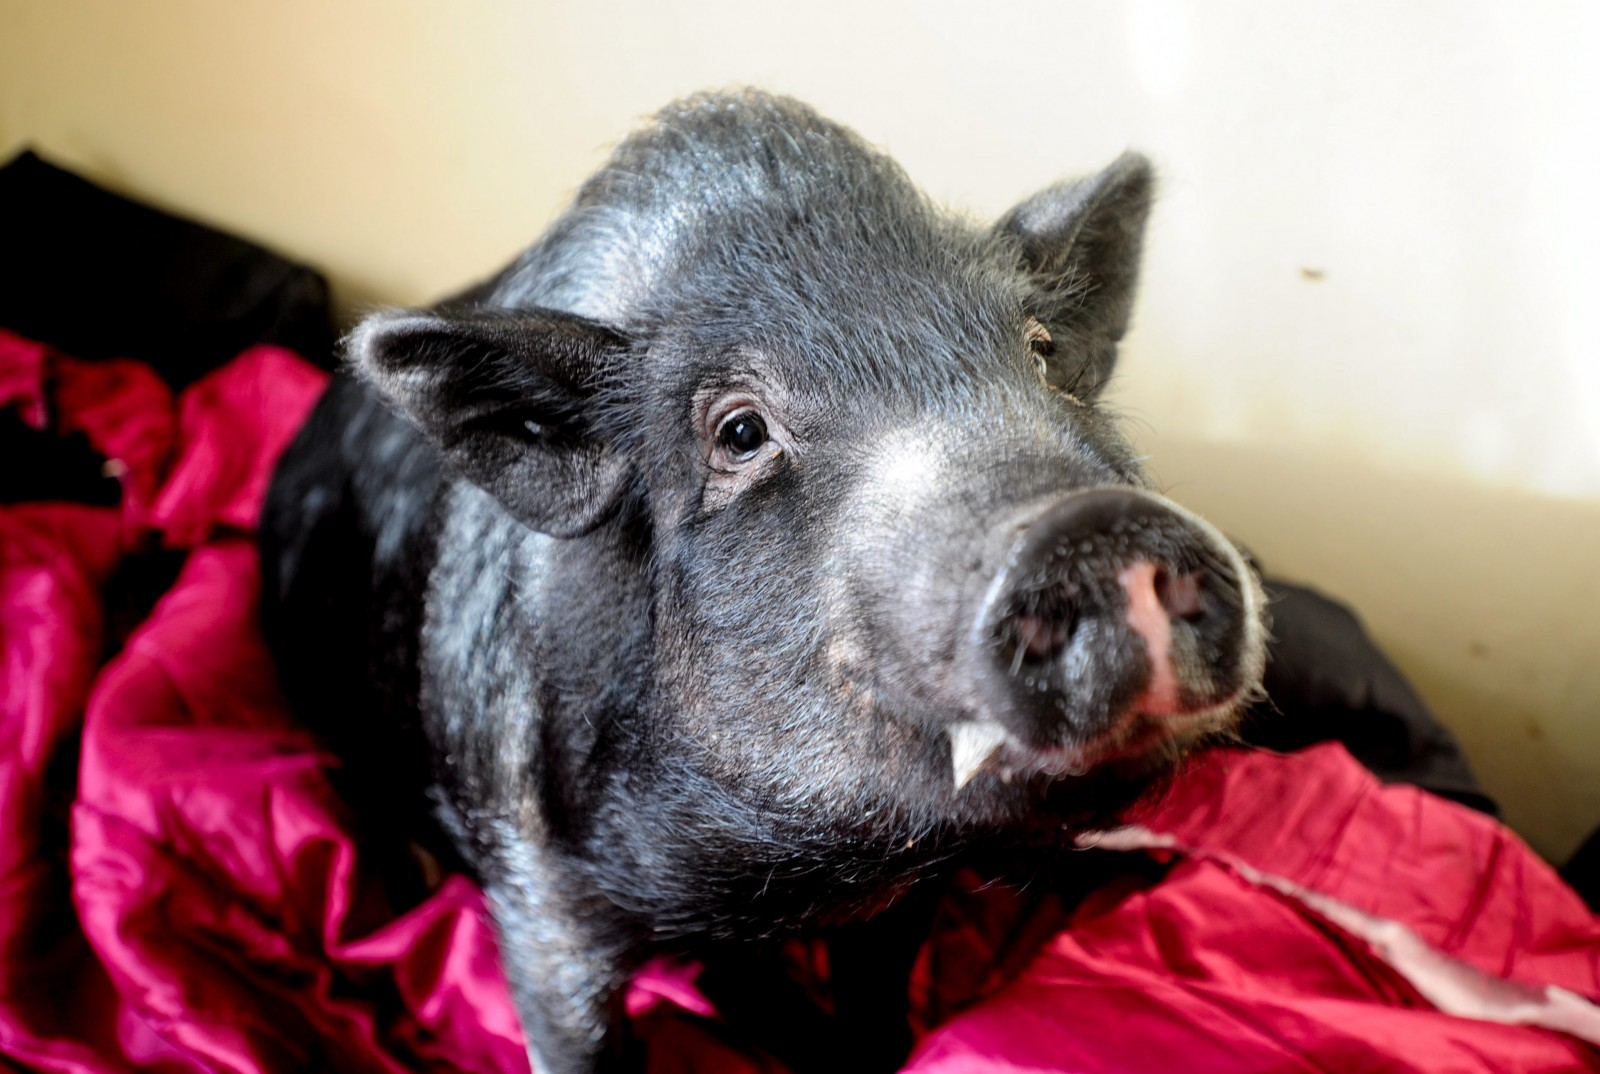 This little piggy DIDN'T go to market – this little piggy found a home (with his own bedroom)